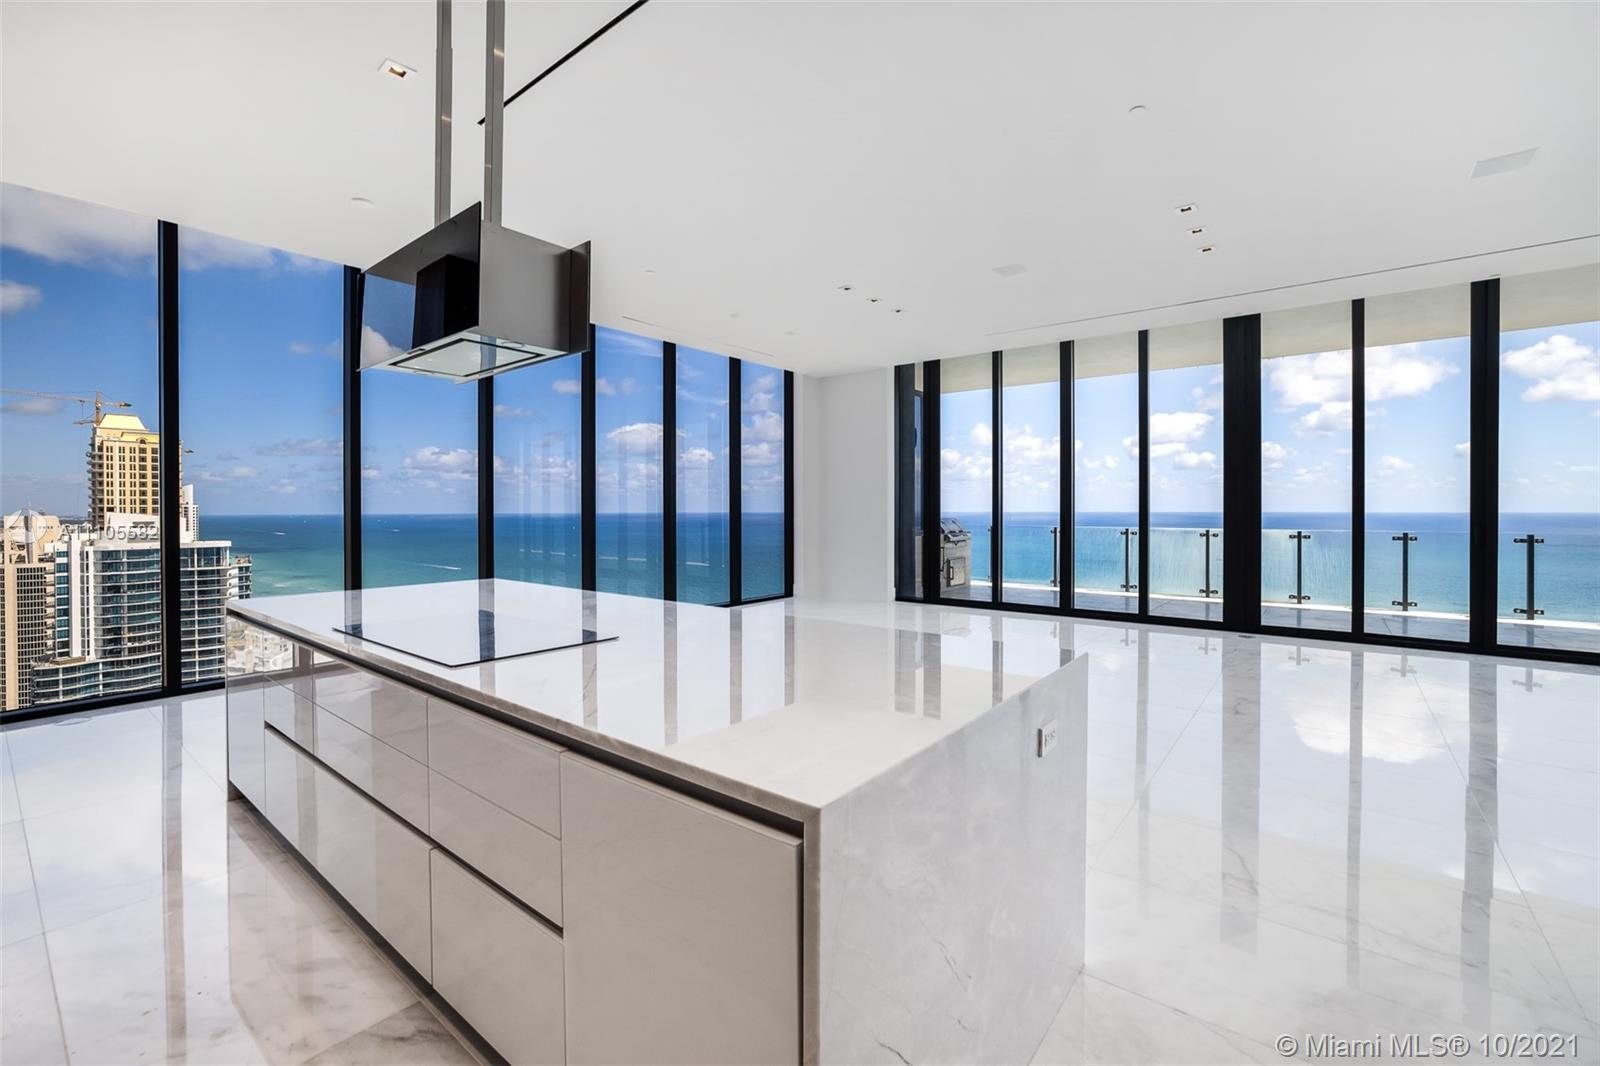 Enjoy unobstructed direct ocean views from this high floor corner residence in Muse Sunny Isles Beach. This never lived in 3bed/3.5 bath + den smart home has some of Sunny Isles best panoramic views. Muse is known for its sleek and modern design, with #3901 boasting interior features such as: a private foyer entry, 12' ceilings, book-matched Italian kitchen cabinetry, marble floors throughout, and an expansive living area. Exceptional principal suite w/midnight bar & spa-like bath. Expansive walk-in closet w/leather inserts & up lighting. Uniquely large outdoor terrace w/summer kitchen. Amenities include infinity edge pool, breakfast for owners, food/beverage service, house car, automated parking system, sauna & fitness center.